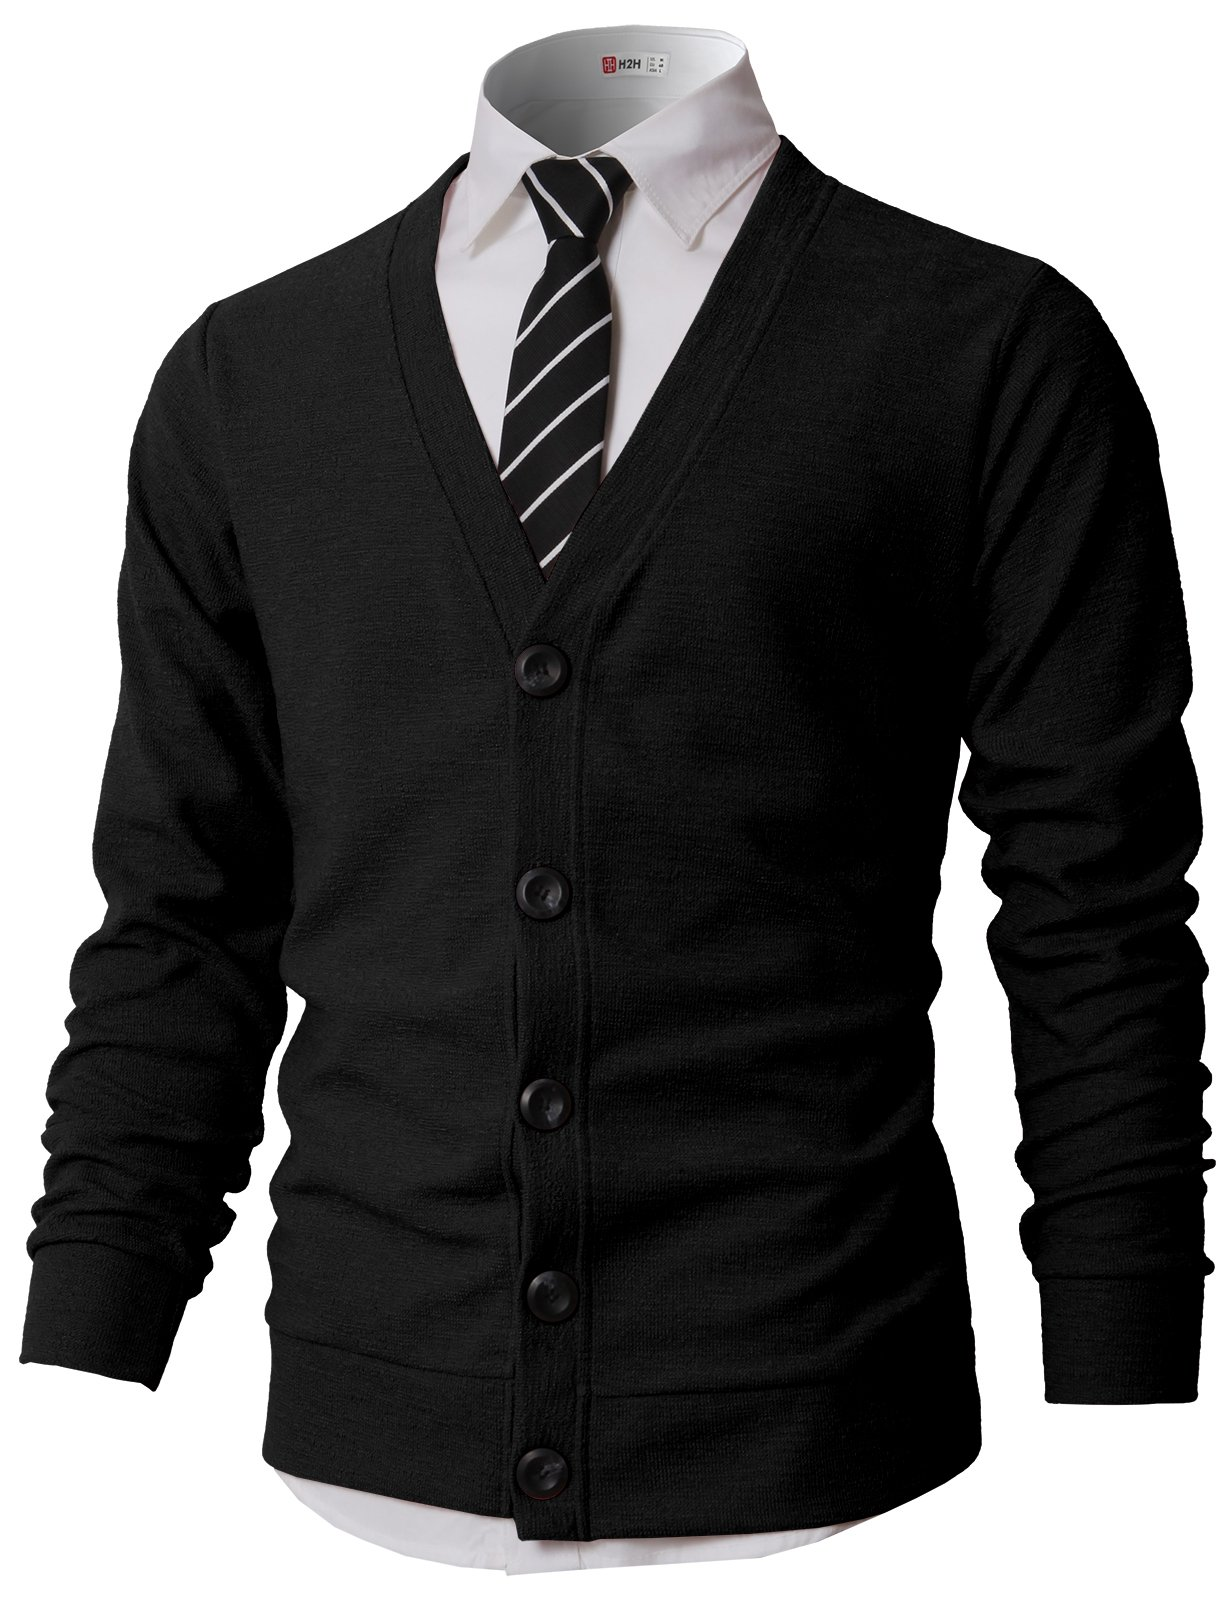 H2H Mens Casual Basic V-Neck Button Down Cardigan Sweater Black US M/Asia L (KMOCAL0183)